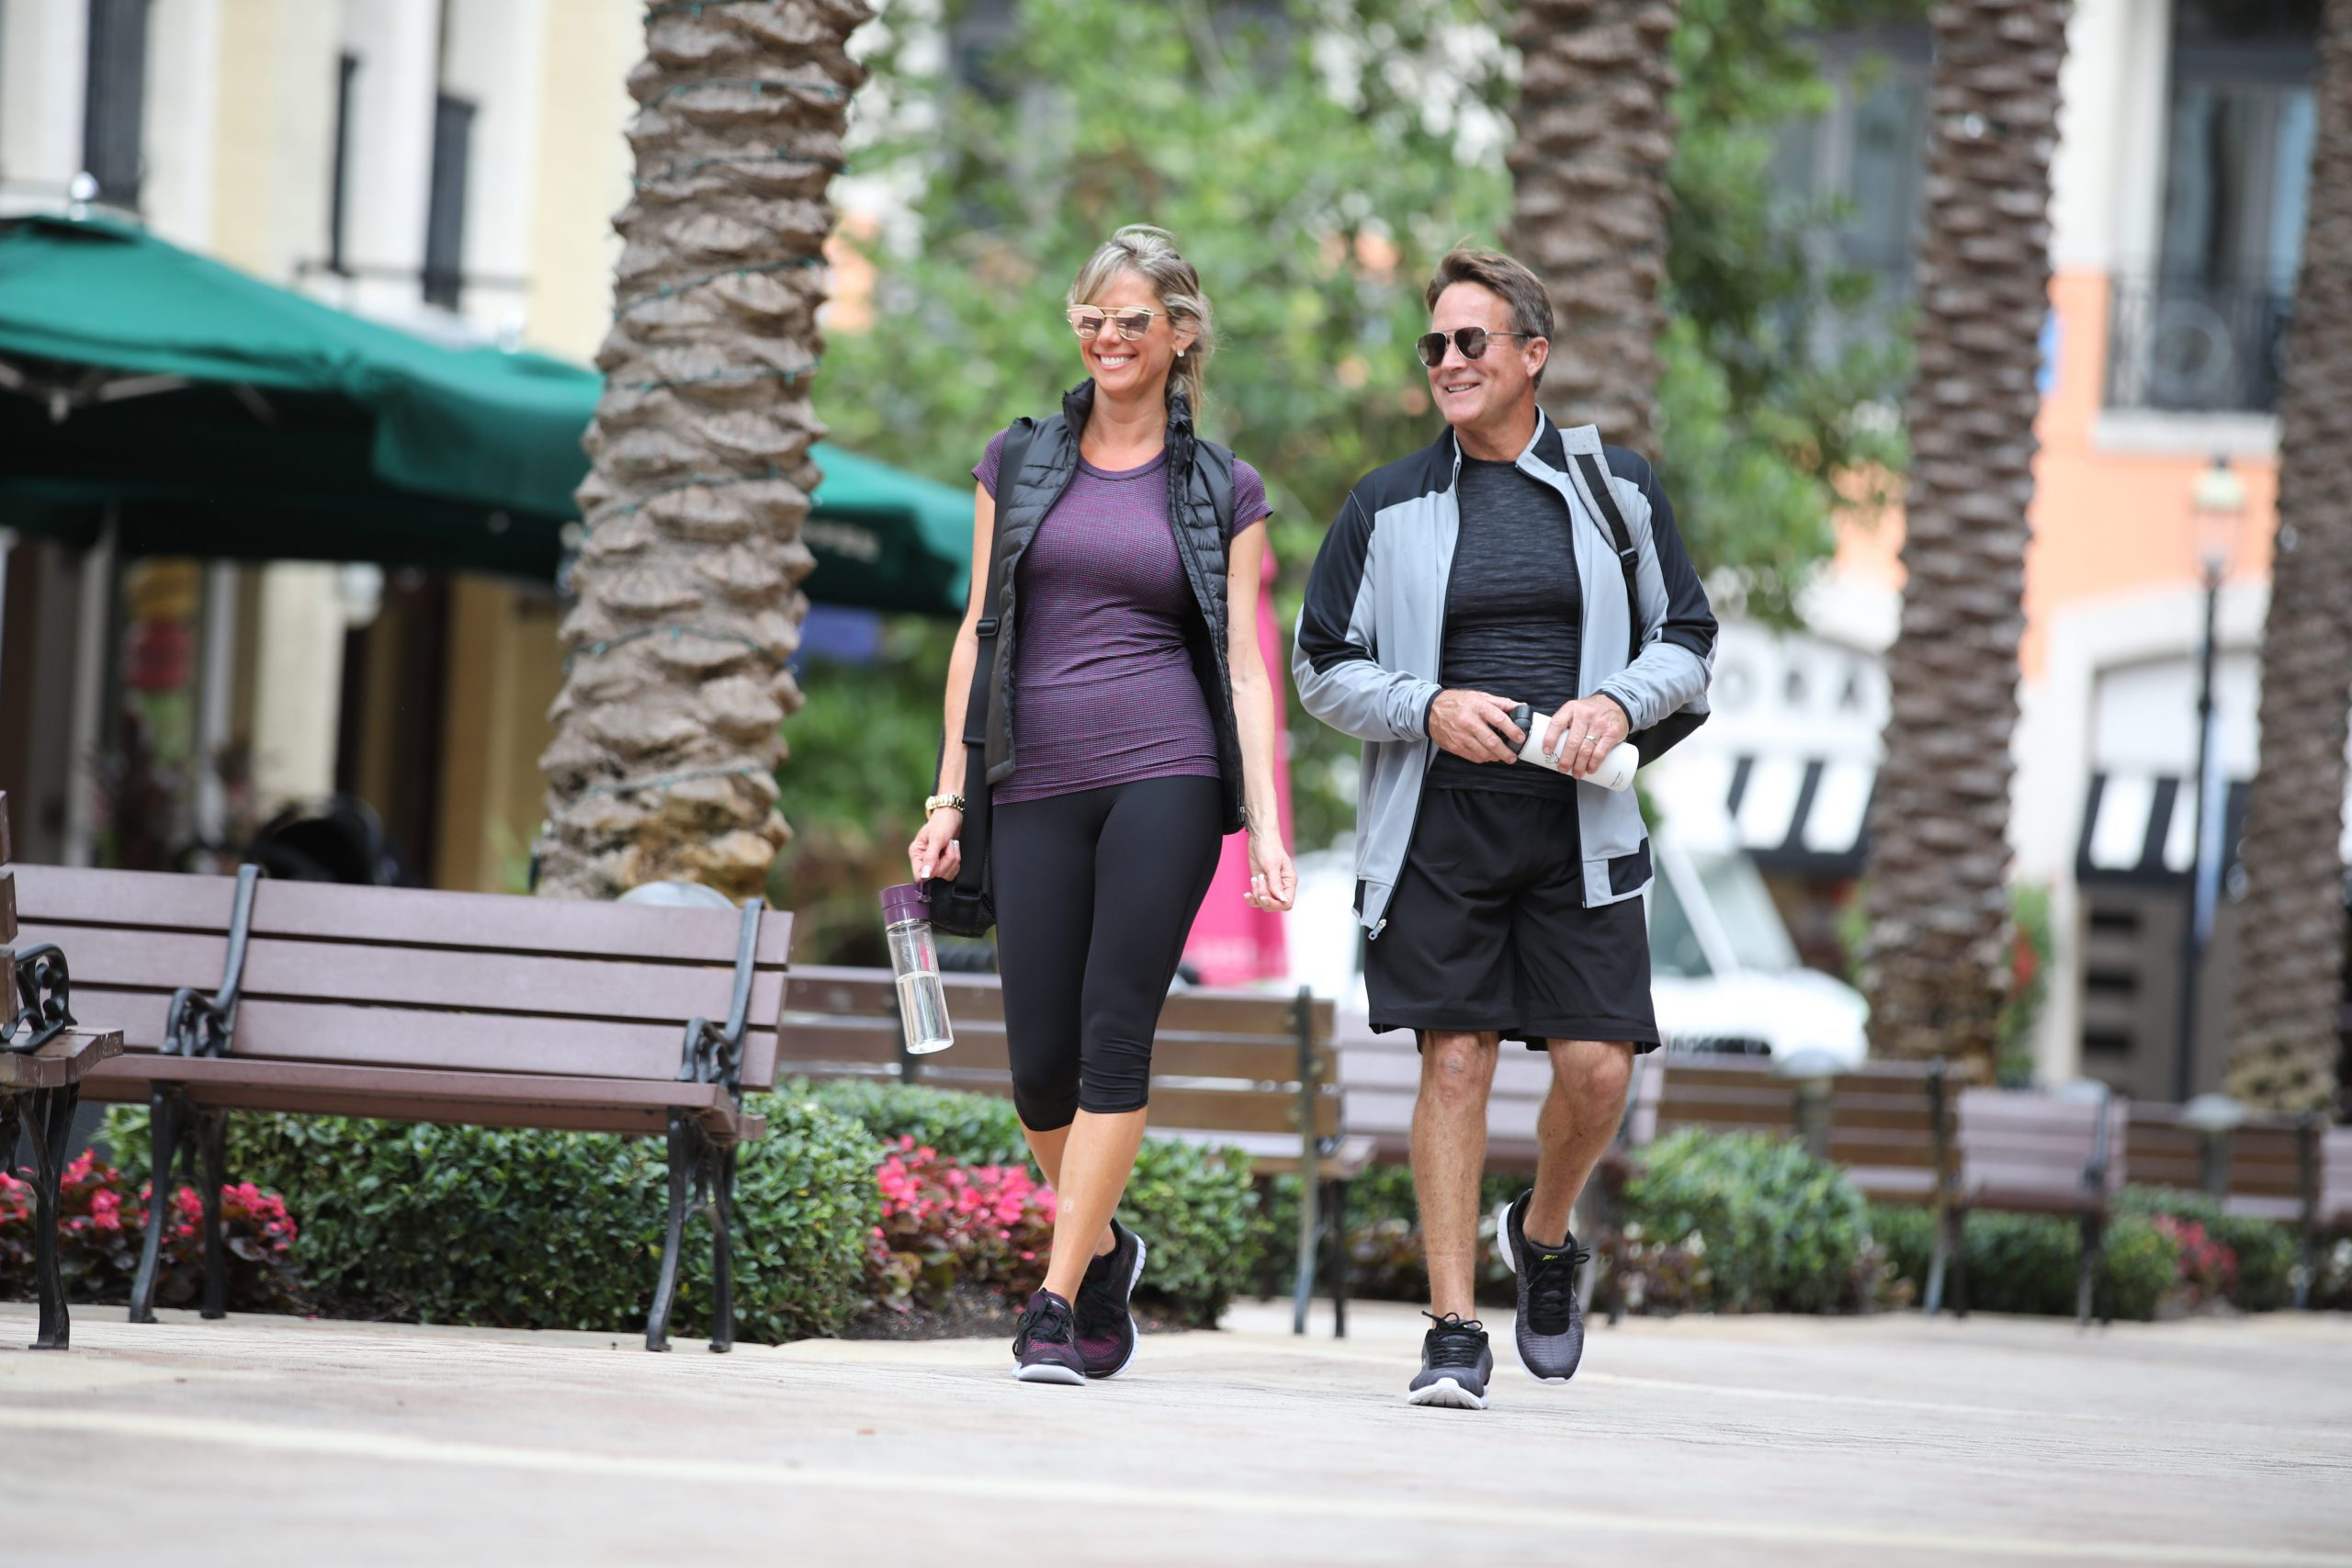 Walkable Urban Living Trend Takes Fort Lauderdale By Storm